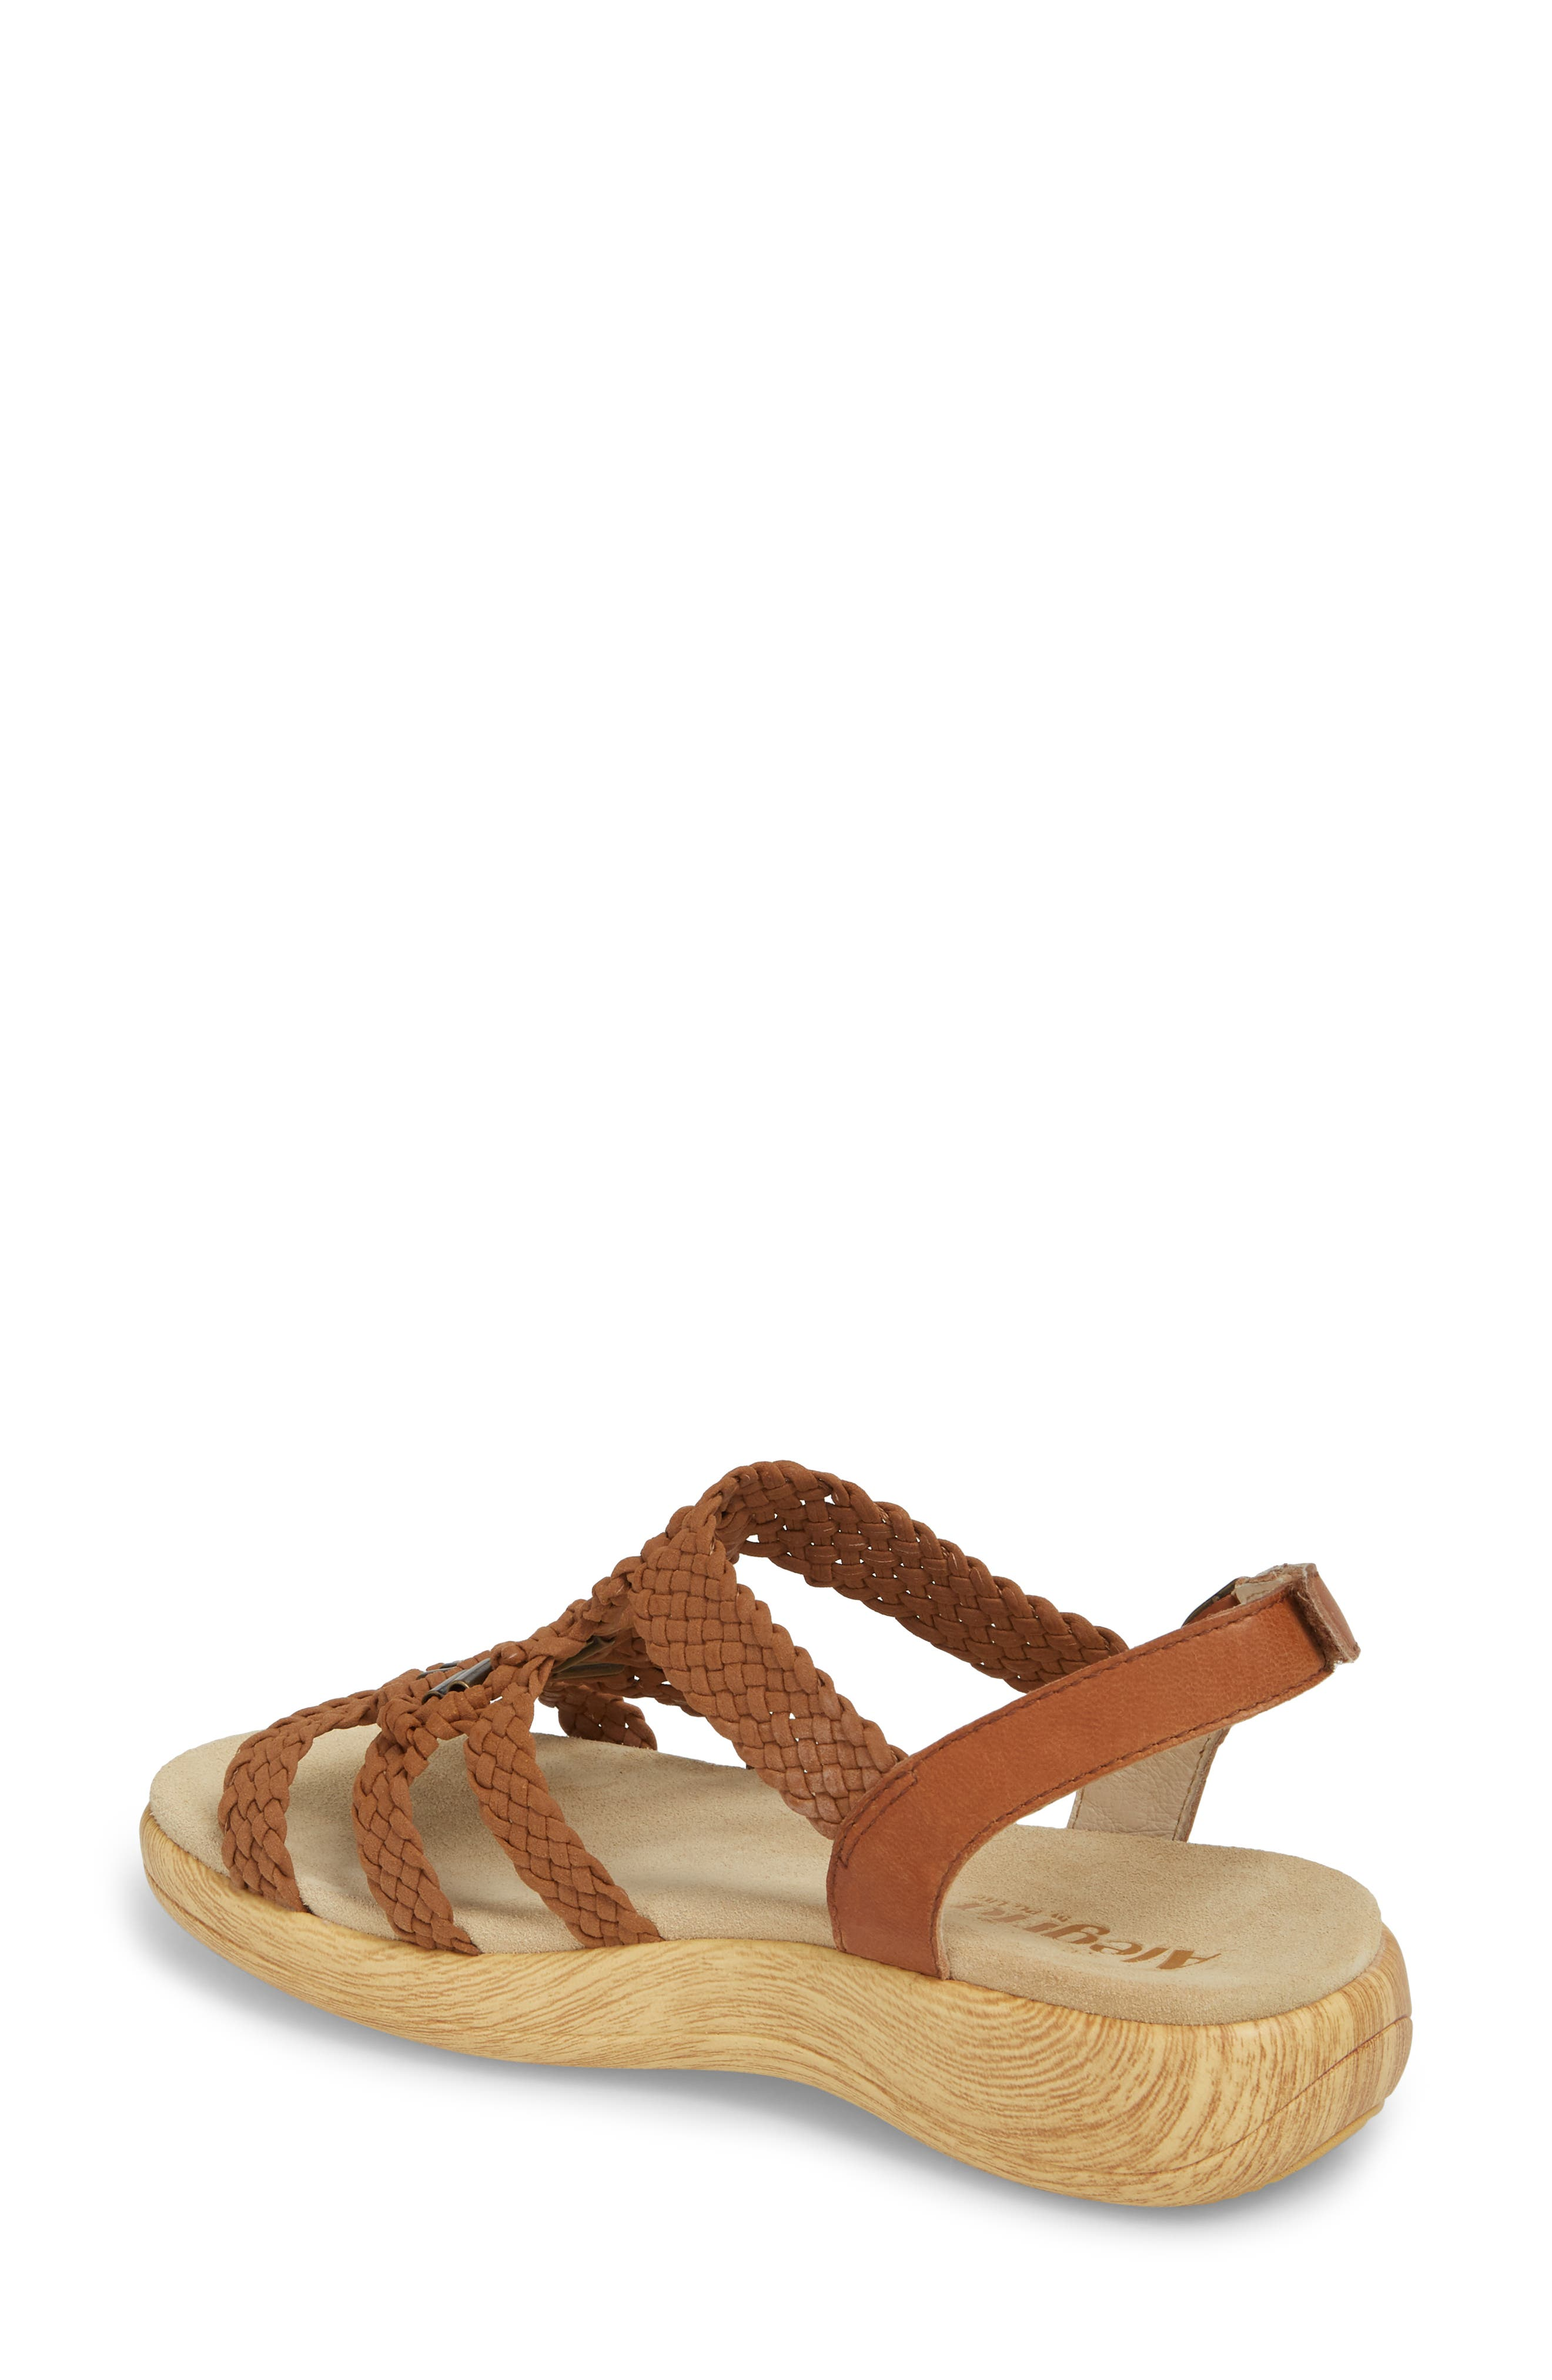 Jena Sandal,                             Alternate thumbnail 6, color,